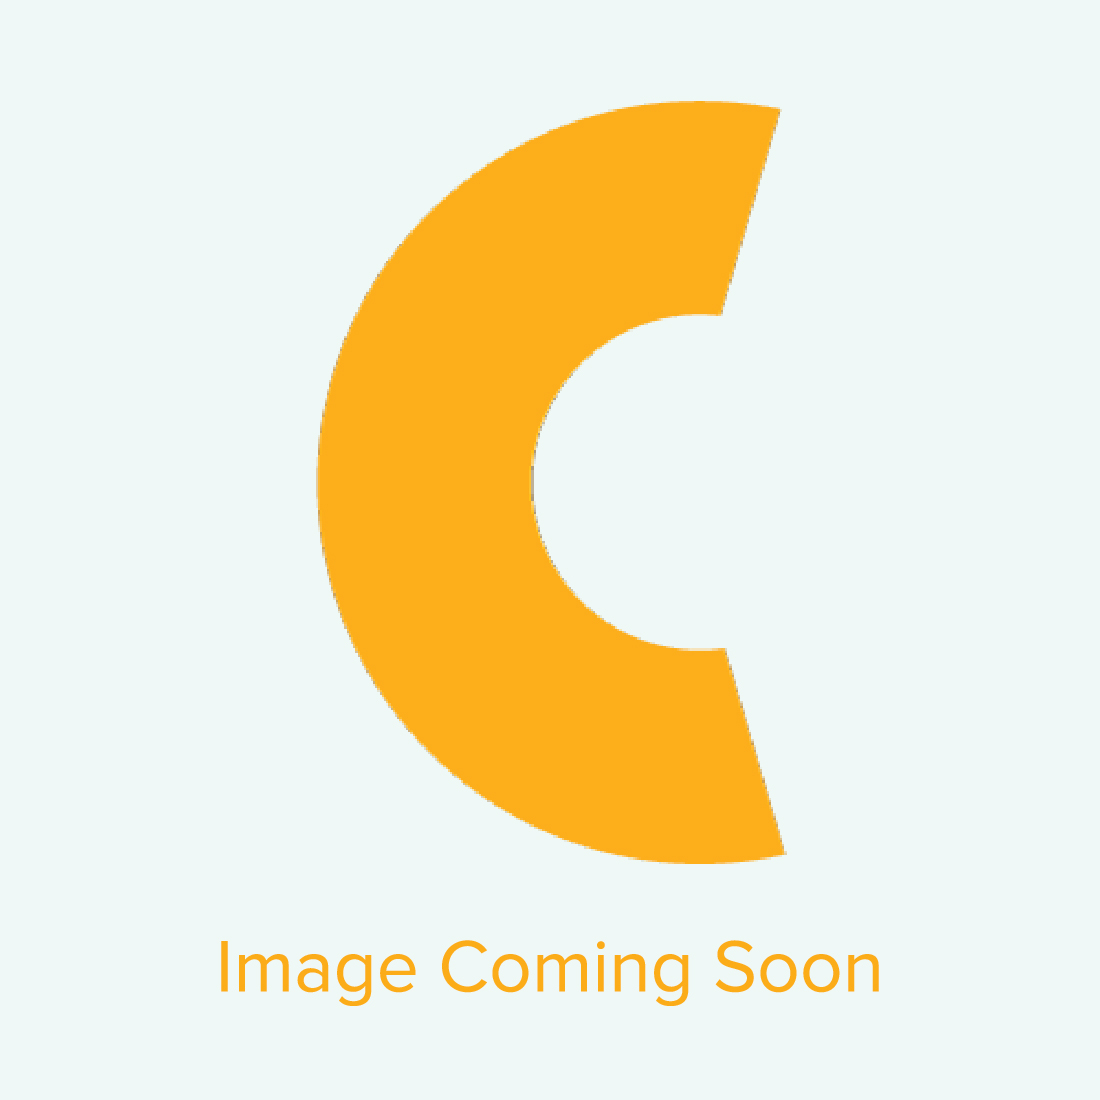 Fitted Silicone Jig for Full-Wrap 1.5oz. Shot Glass Printing for 3D Vacuum Press